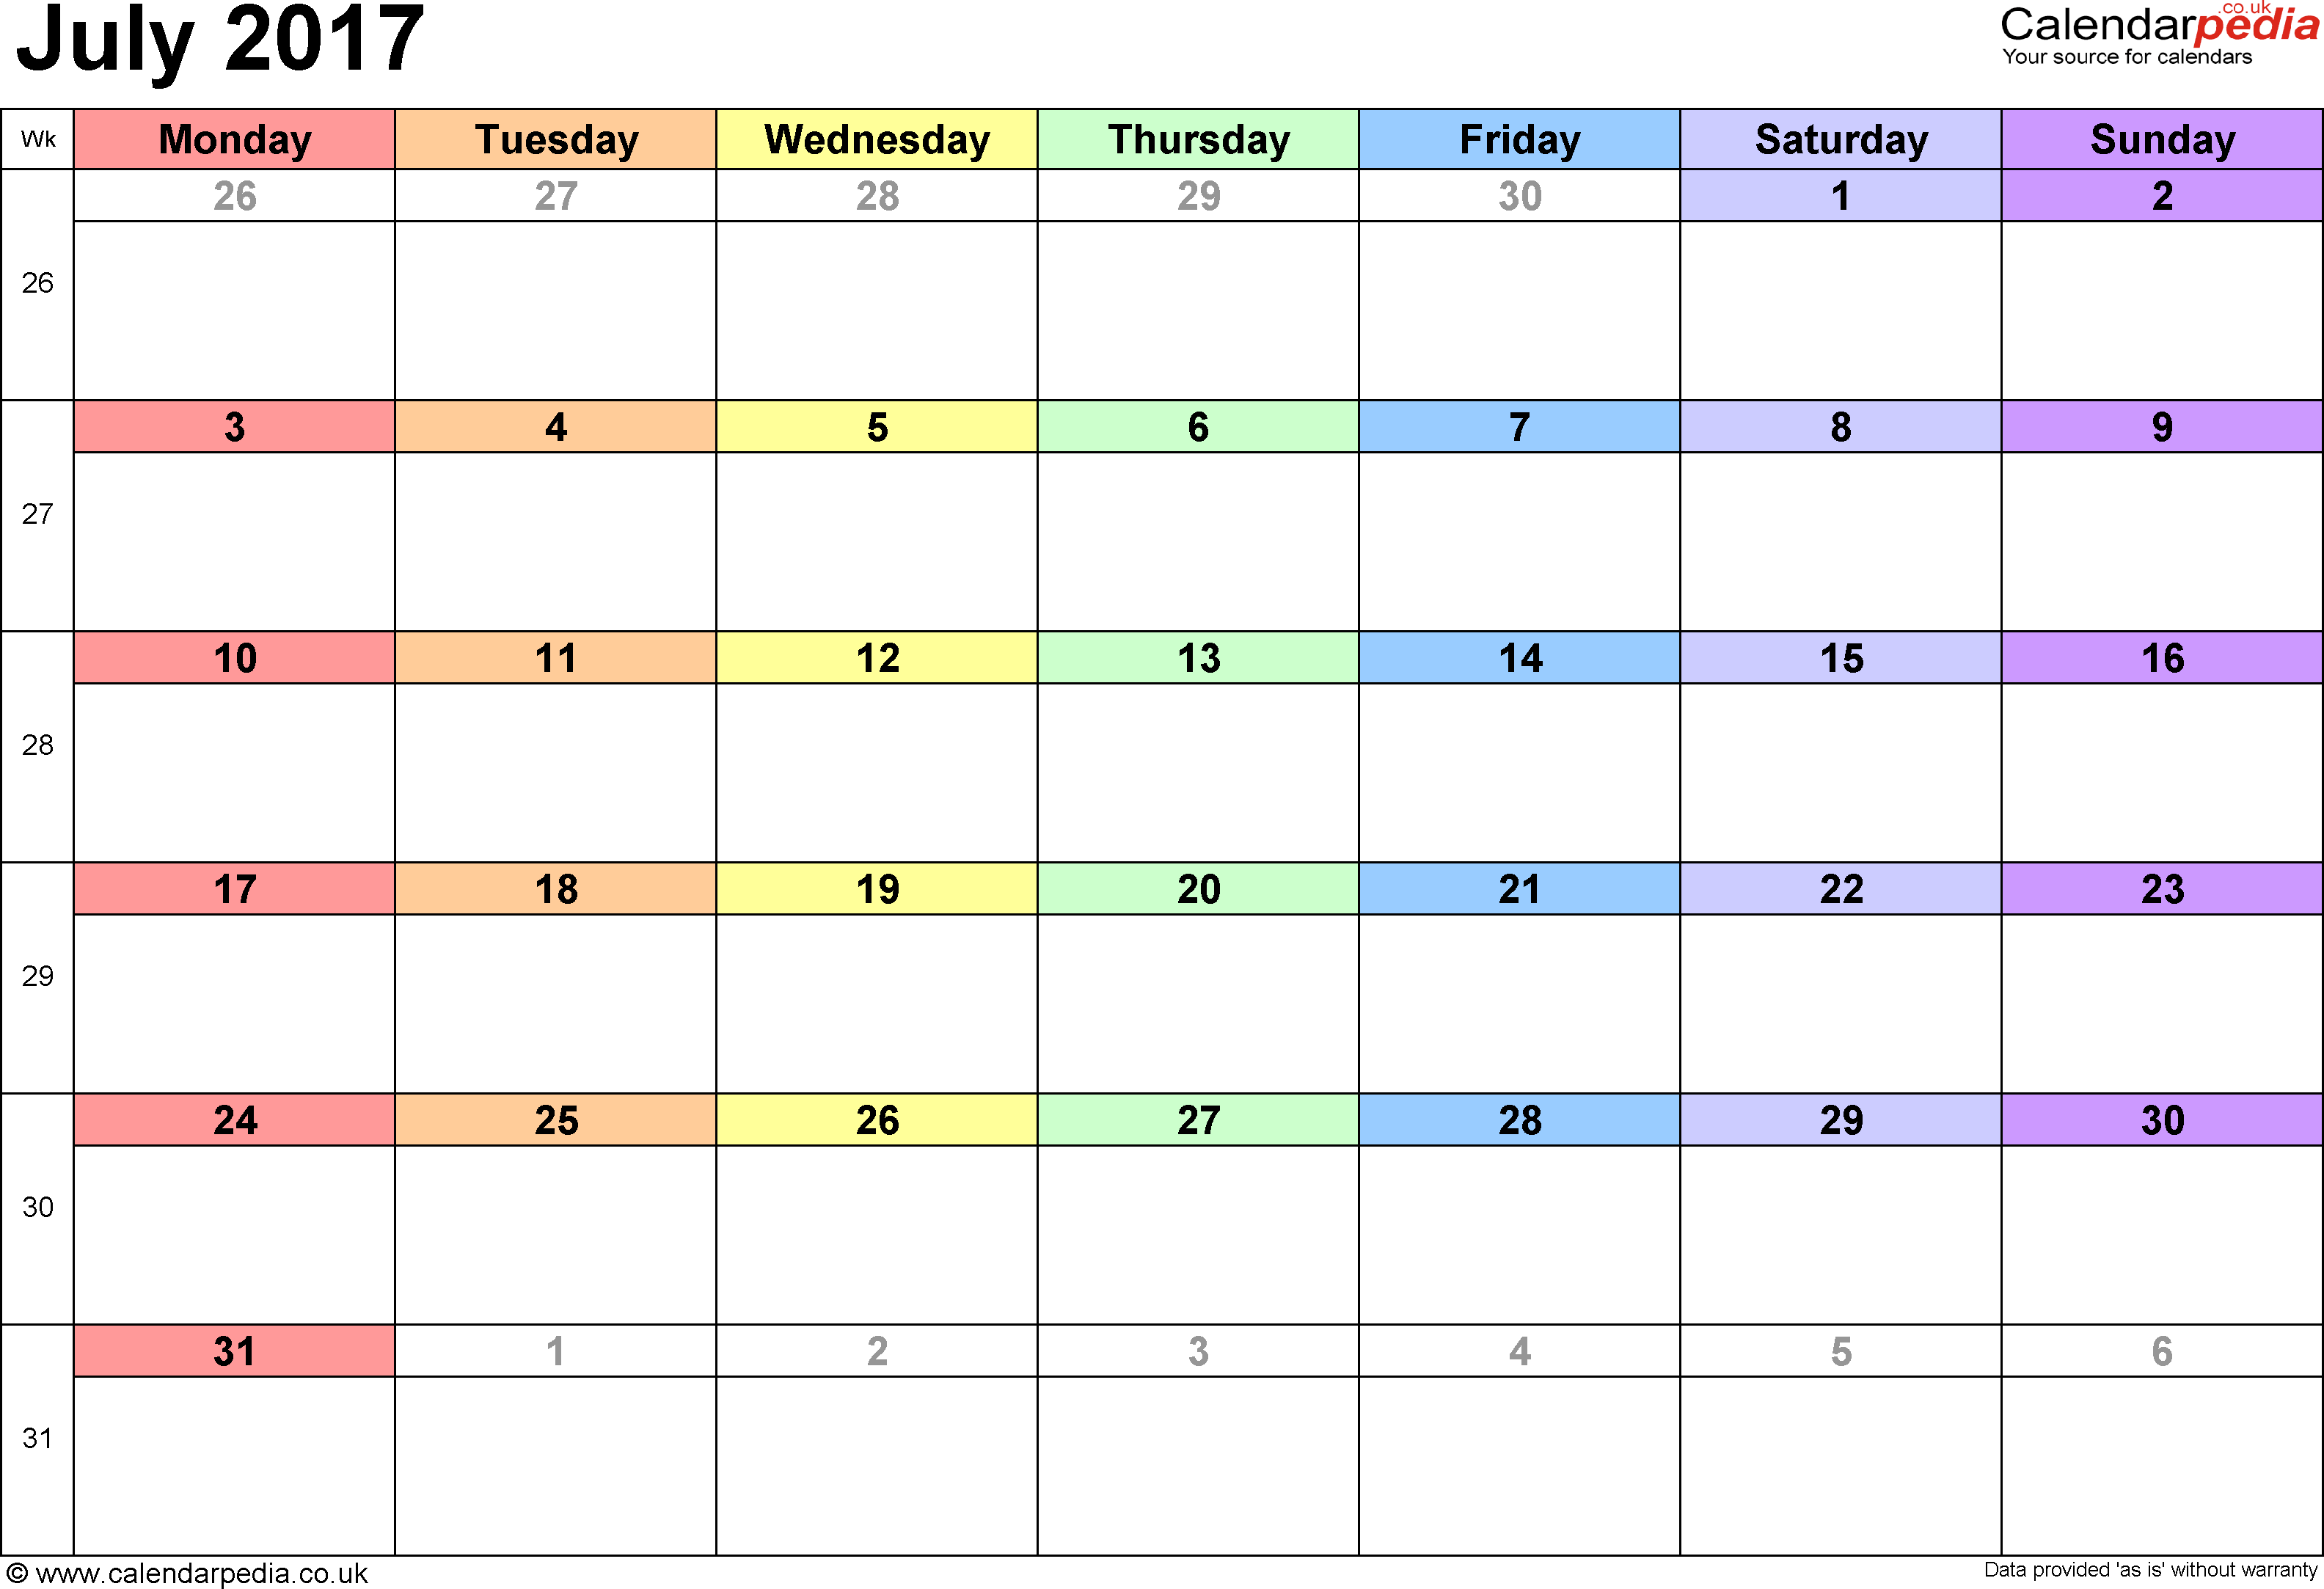 Calendar July 2017 UK, Bank Holidays, Excel/PDF/Word Templates